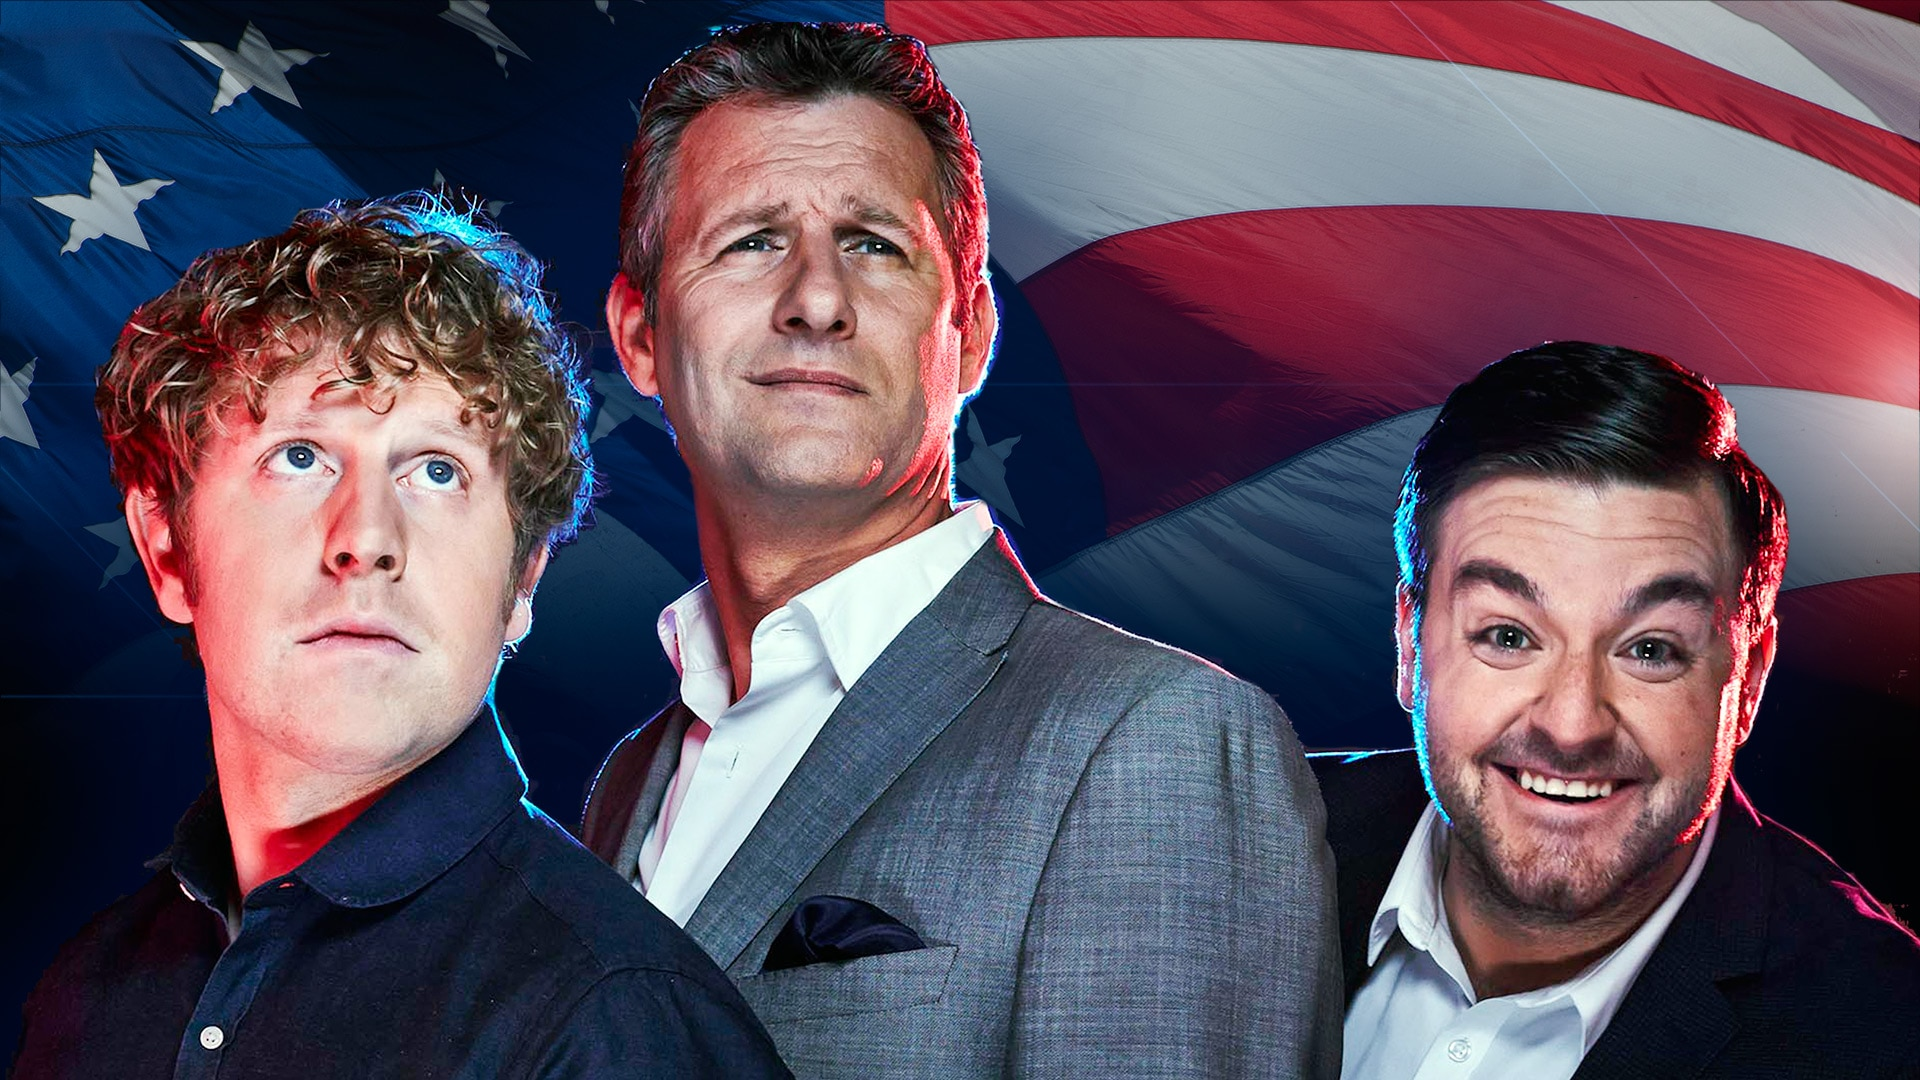 The Last Leg: US Election Special